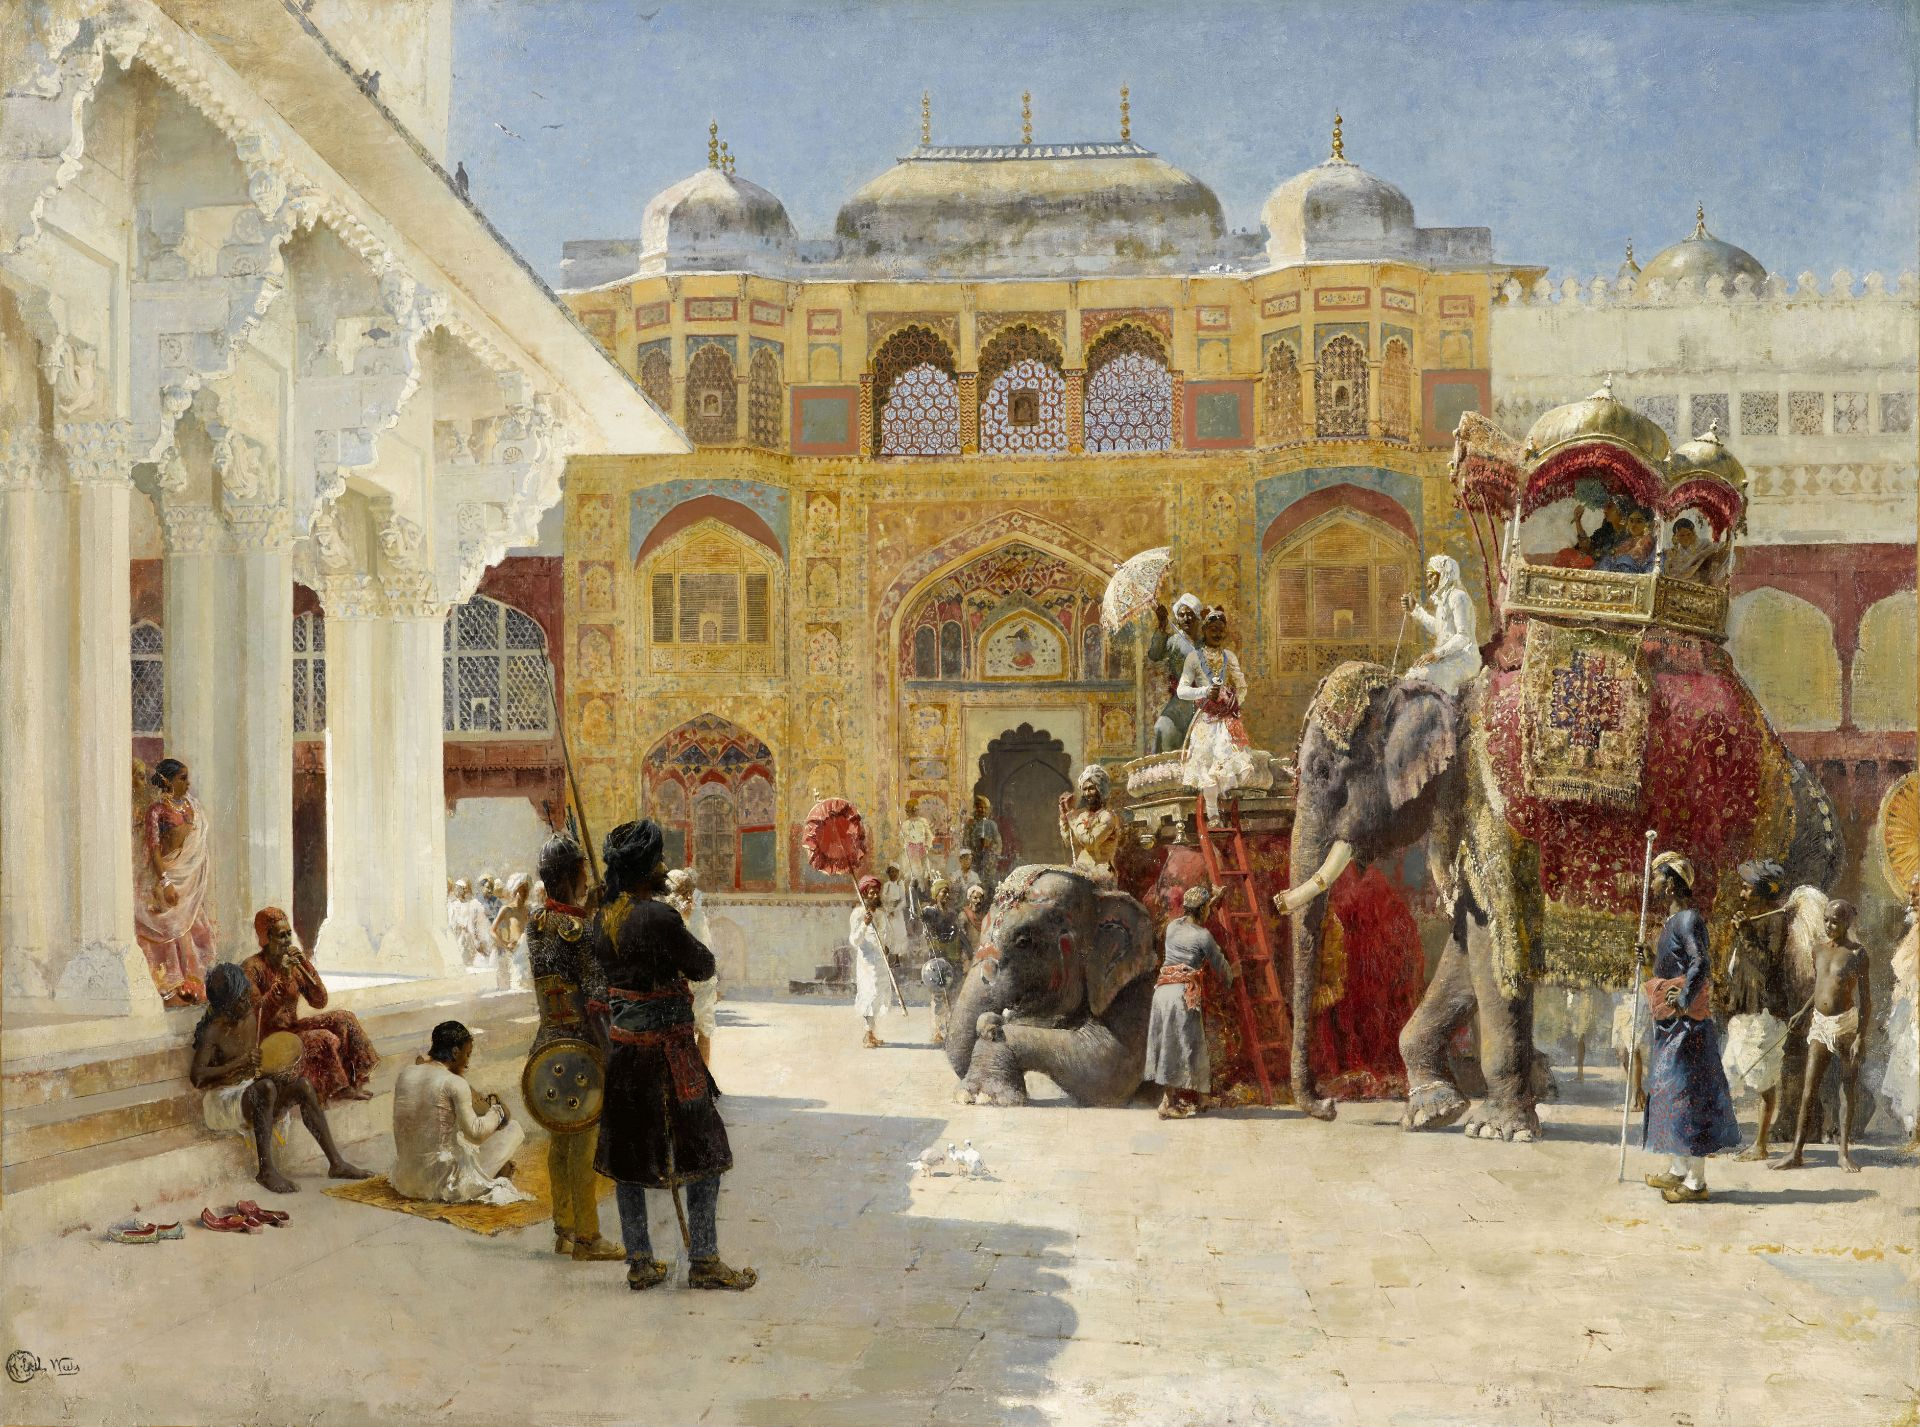 Edwin Lord Weeks (American, 1849-1903) The Arrival of Prince Humbert, the Rajah, at the Palace of...